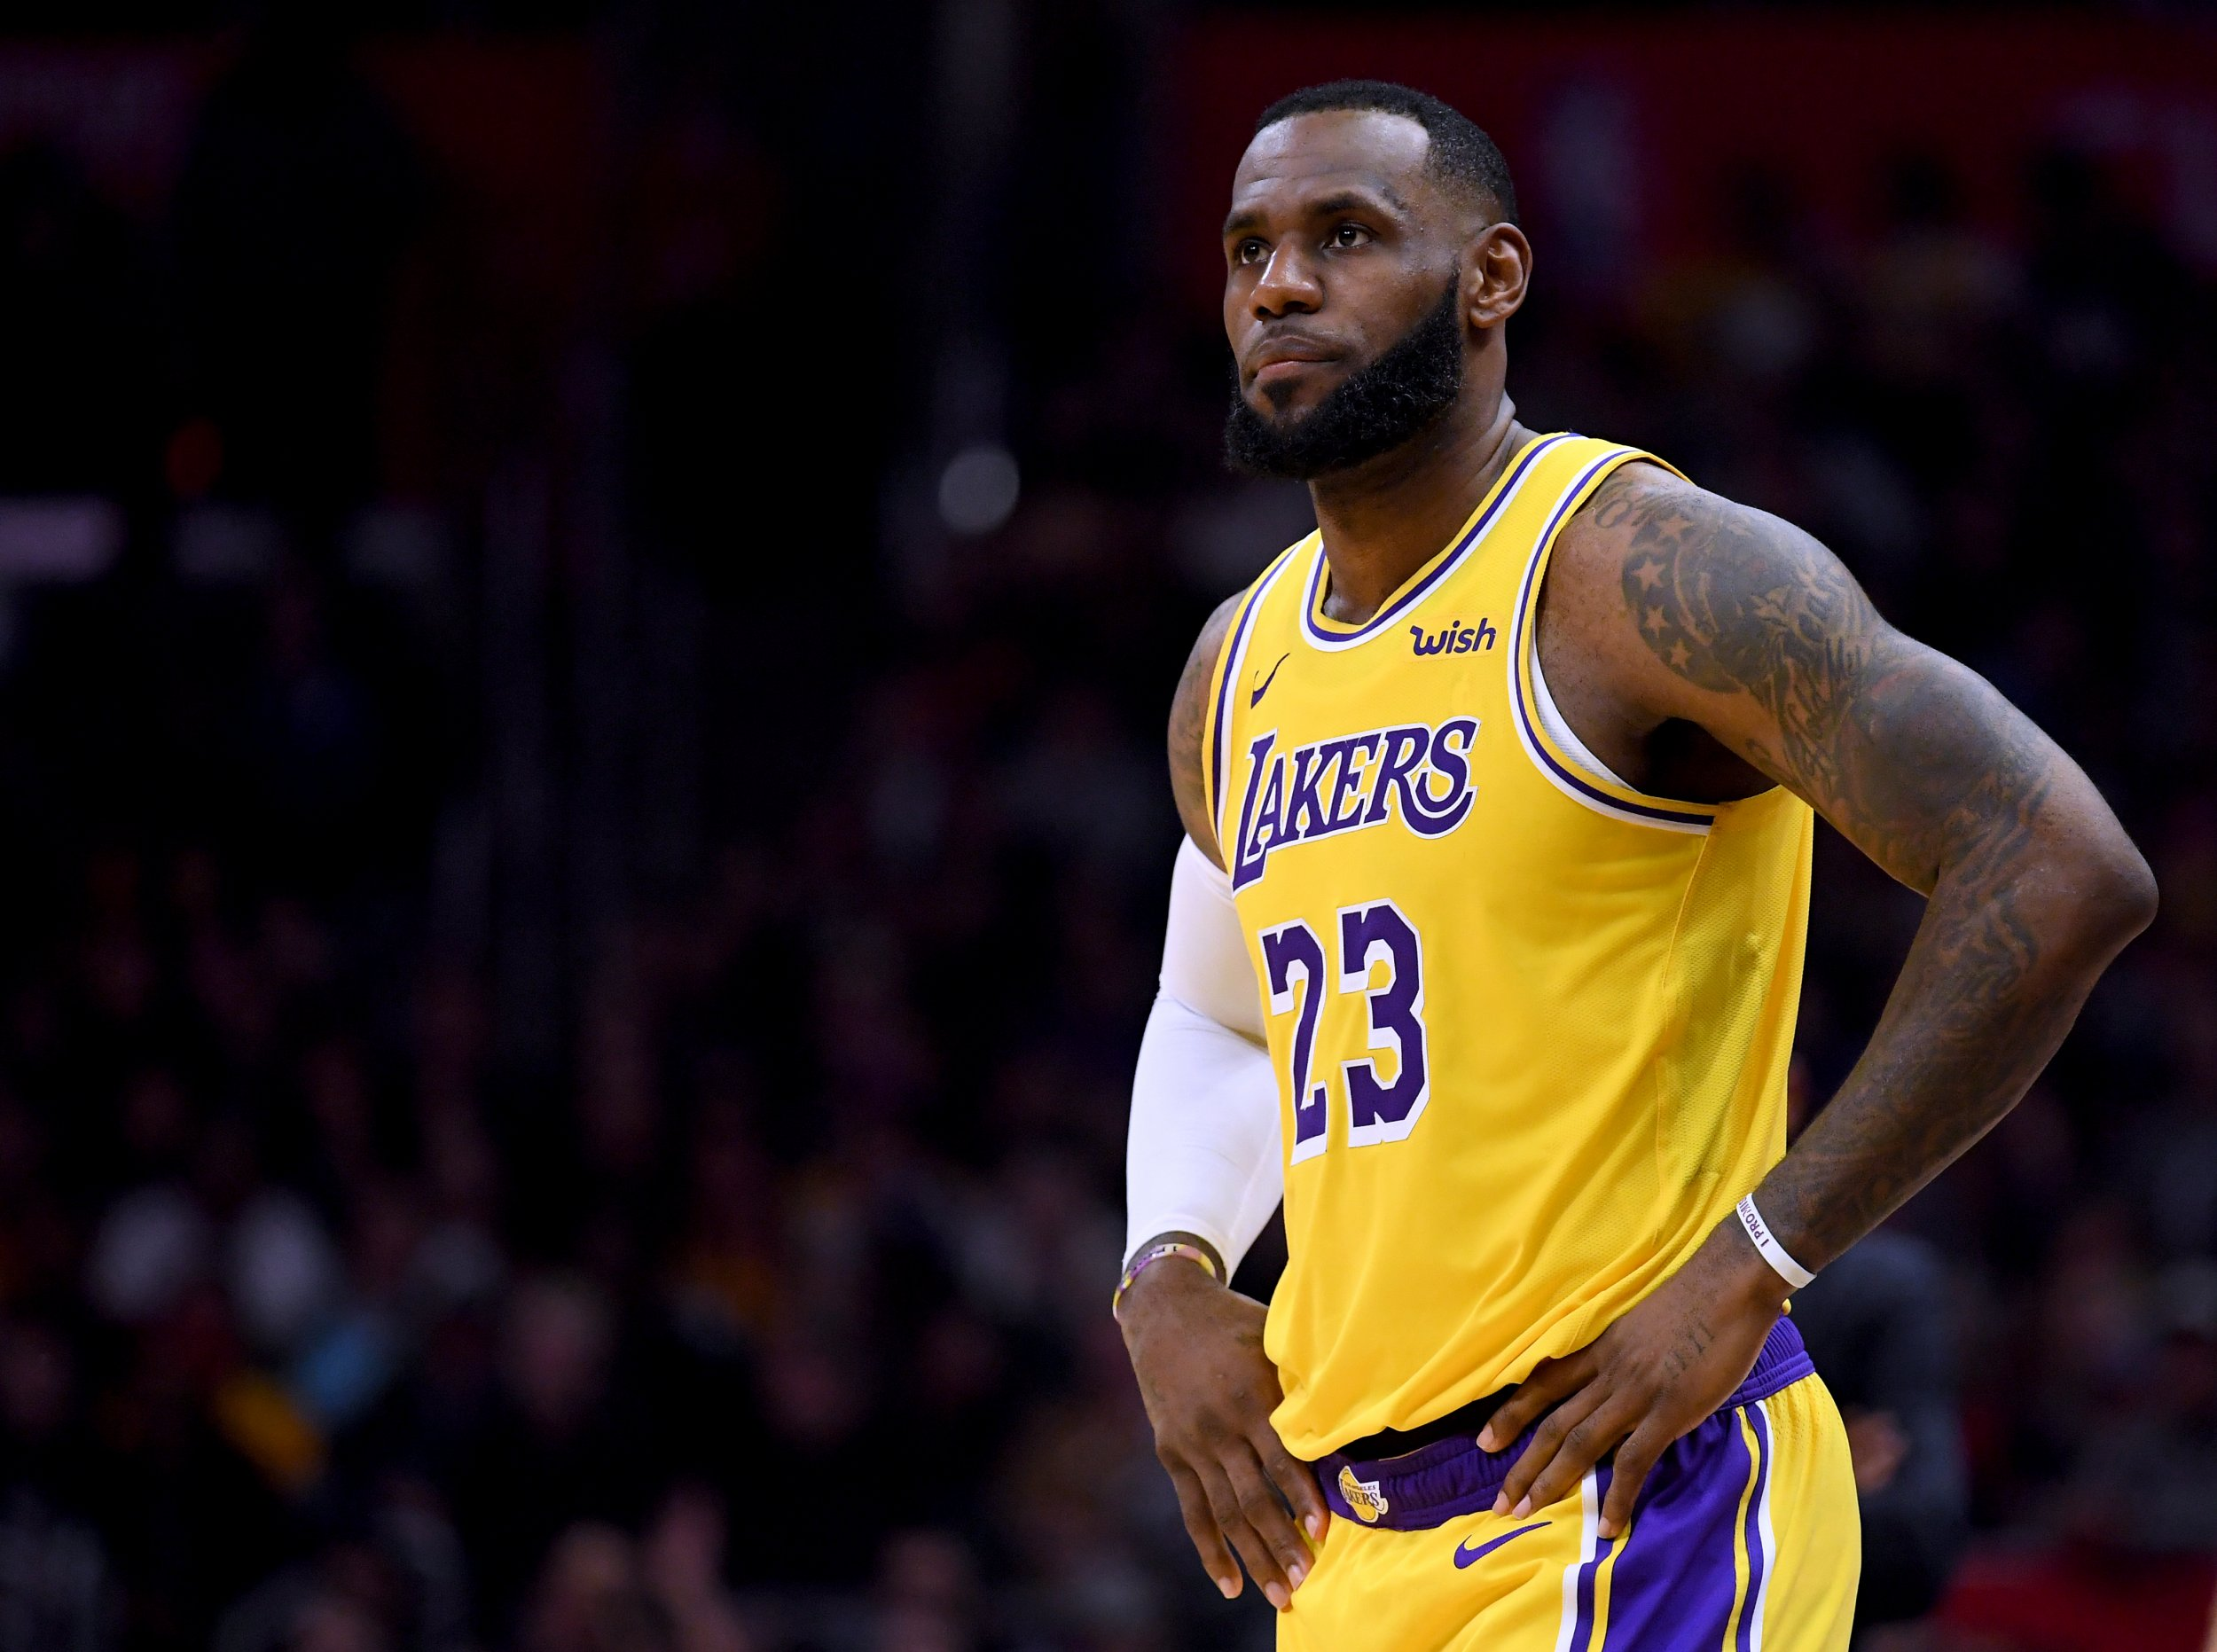 LeBron Could Regret Joining the Lakers, Says Stephen A. Smith